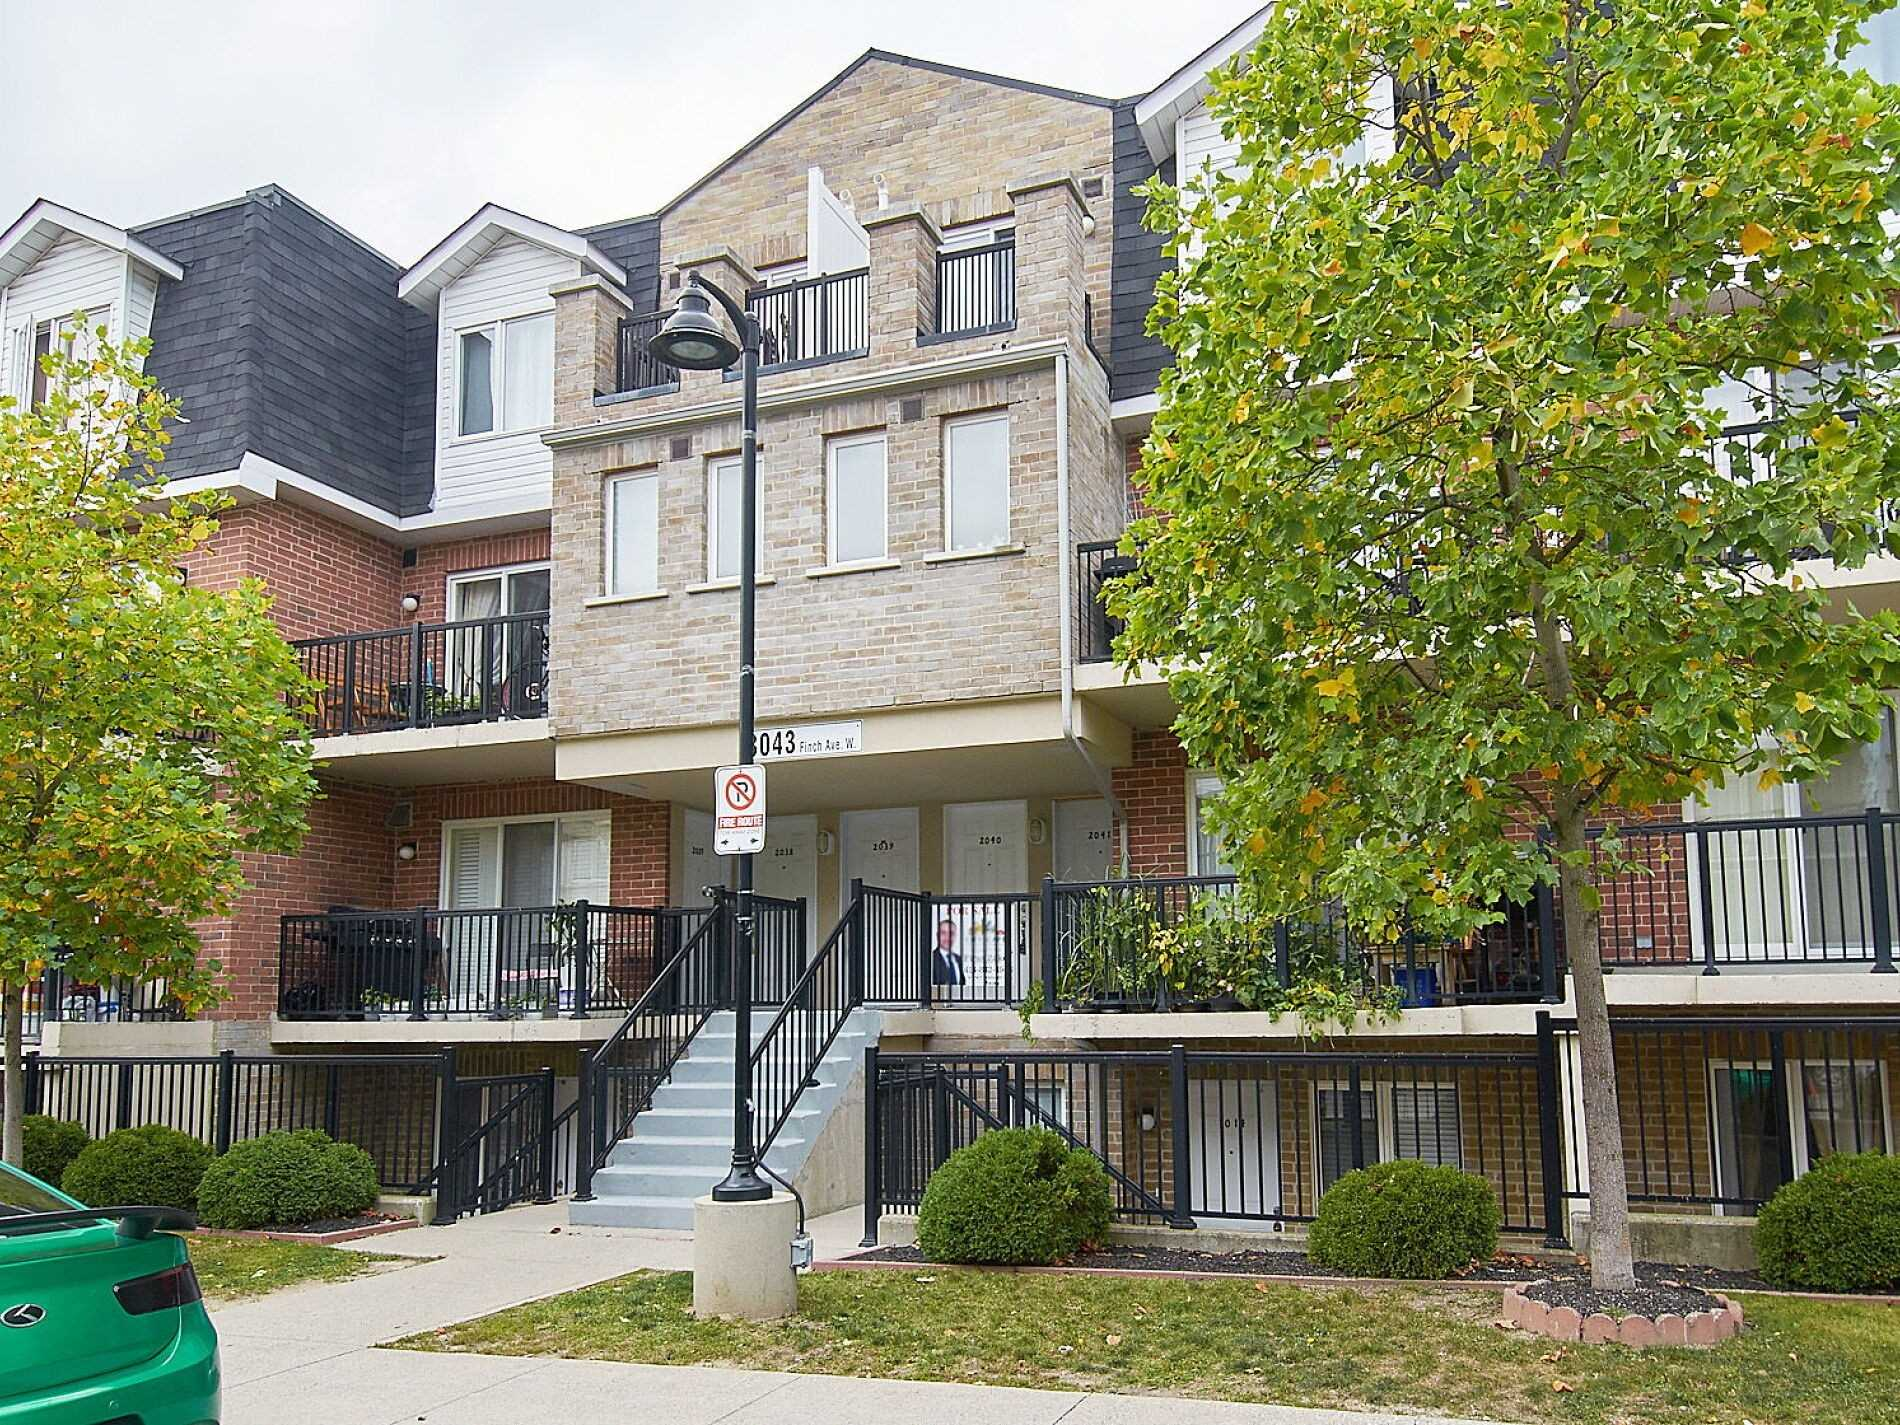 3043 Finch Ave, Toronto, Ontario M9M0A4, 1 Bedroom Bedrooms, 3 Rooms Rooms,1 BathroomBathrooms,Condo Townhouse,For Sale,Finch,W4927355